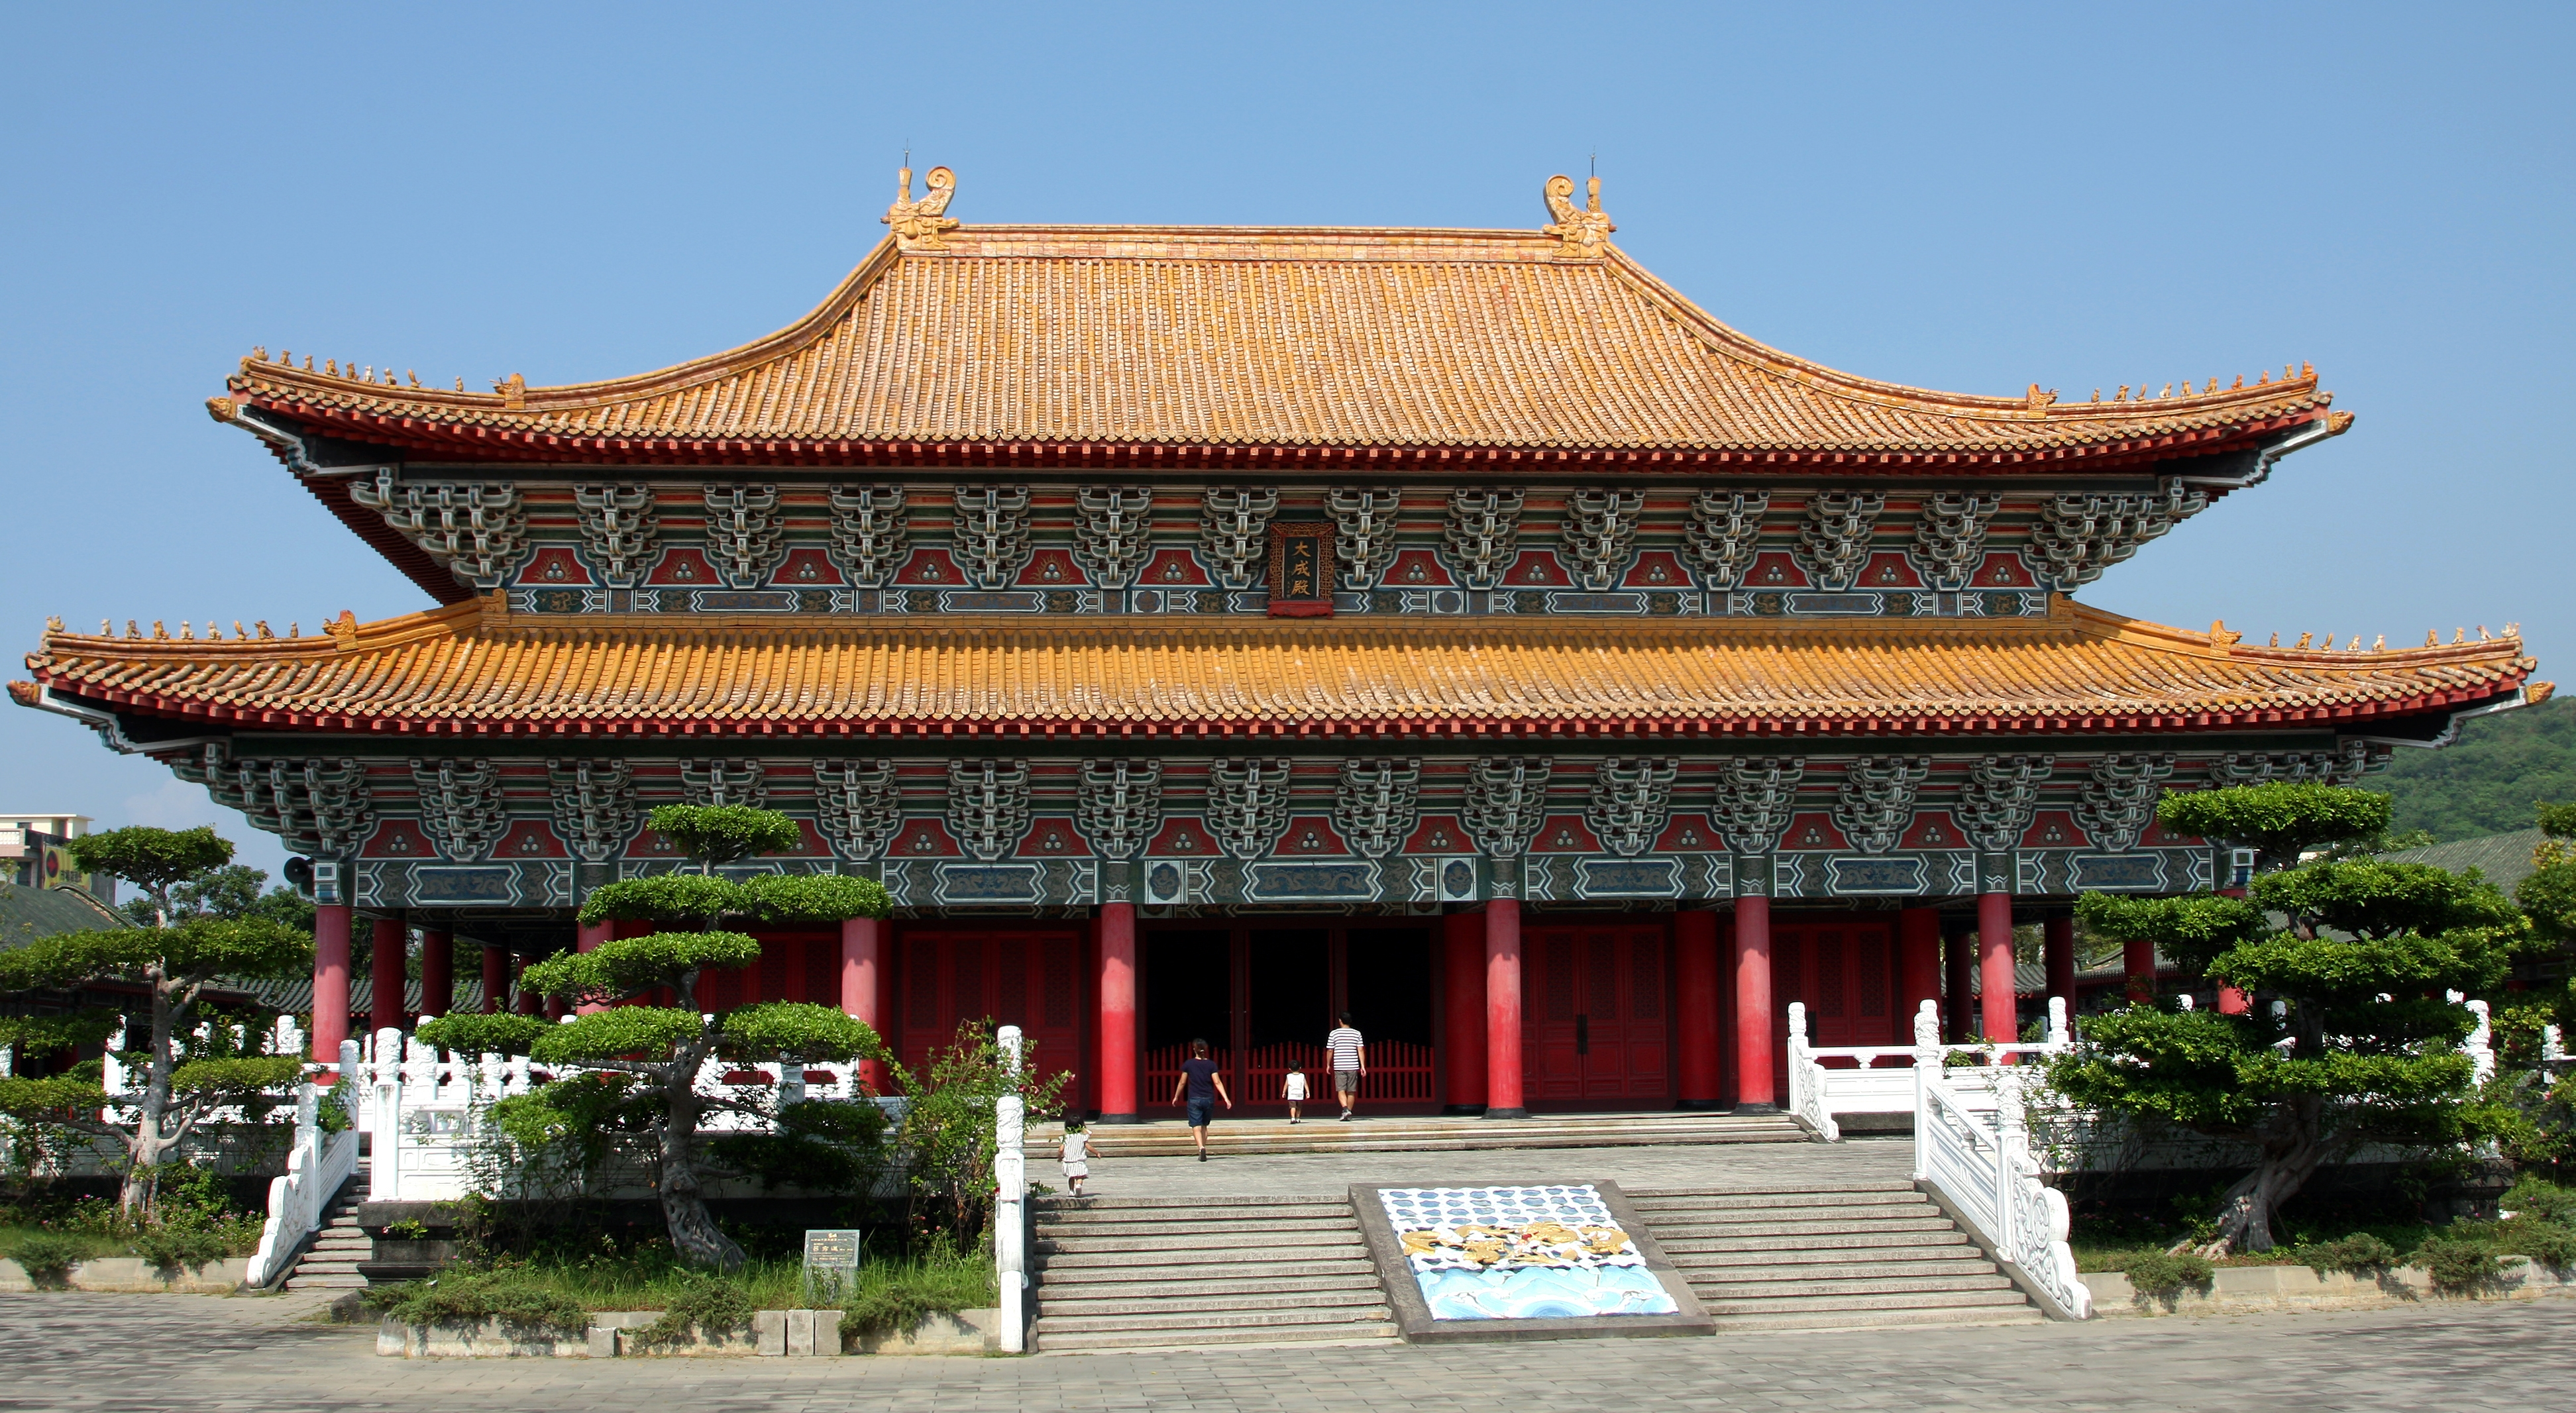 Temple of Confucius - Sights